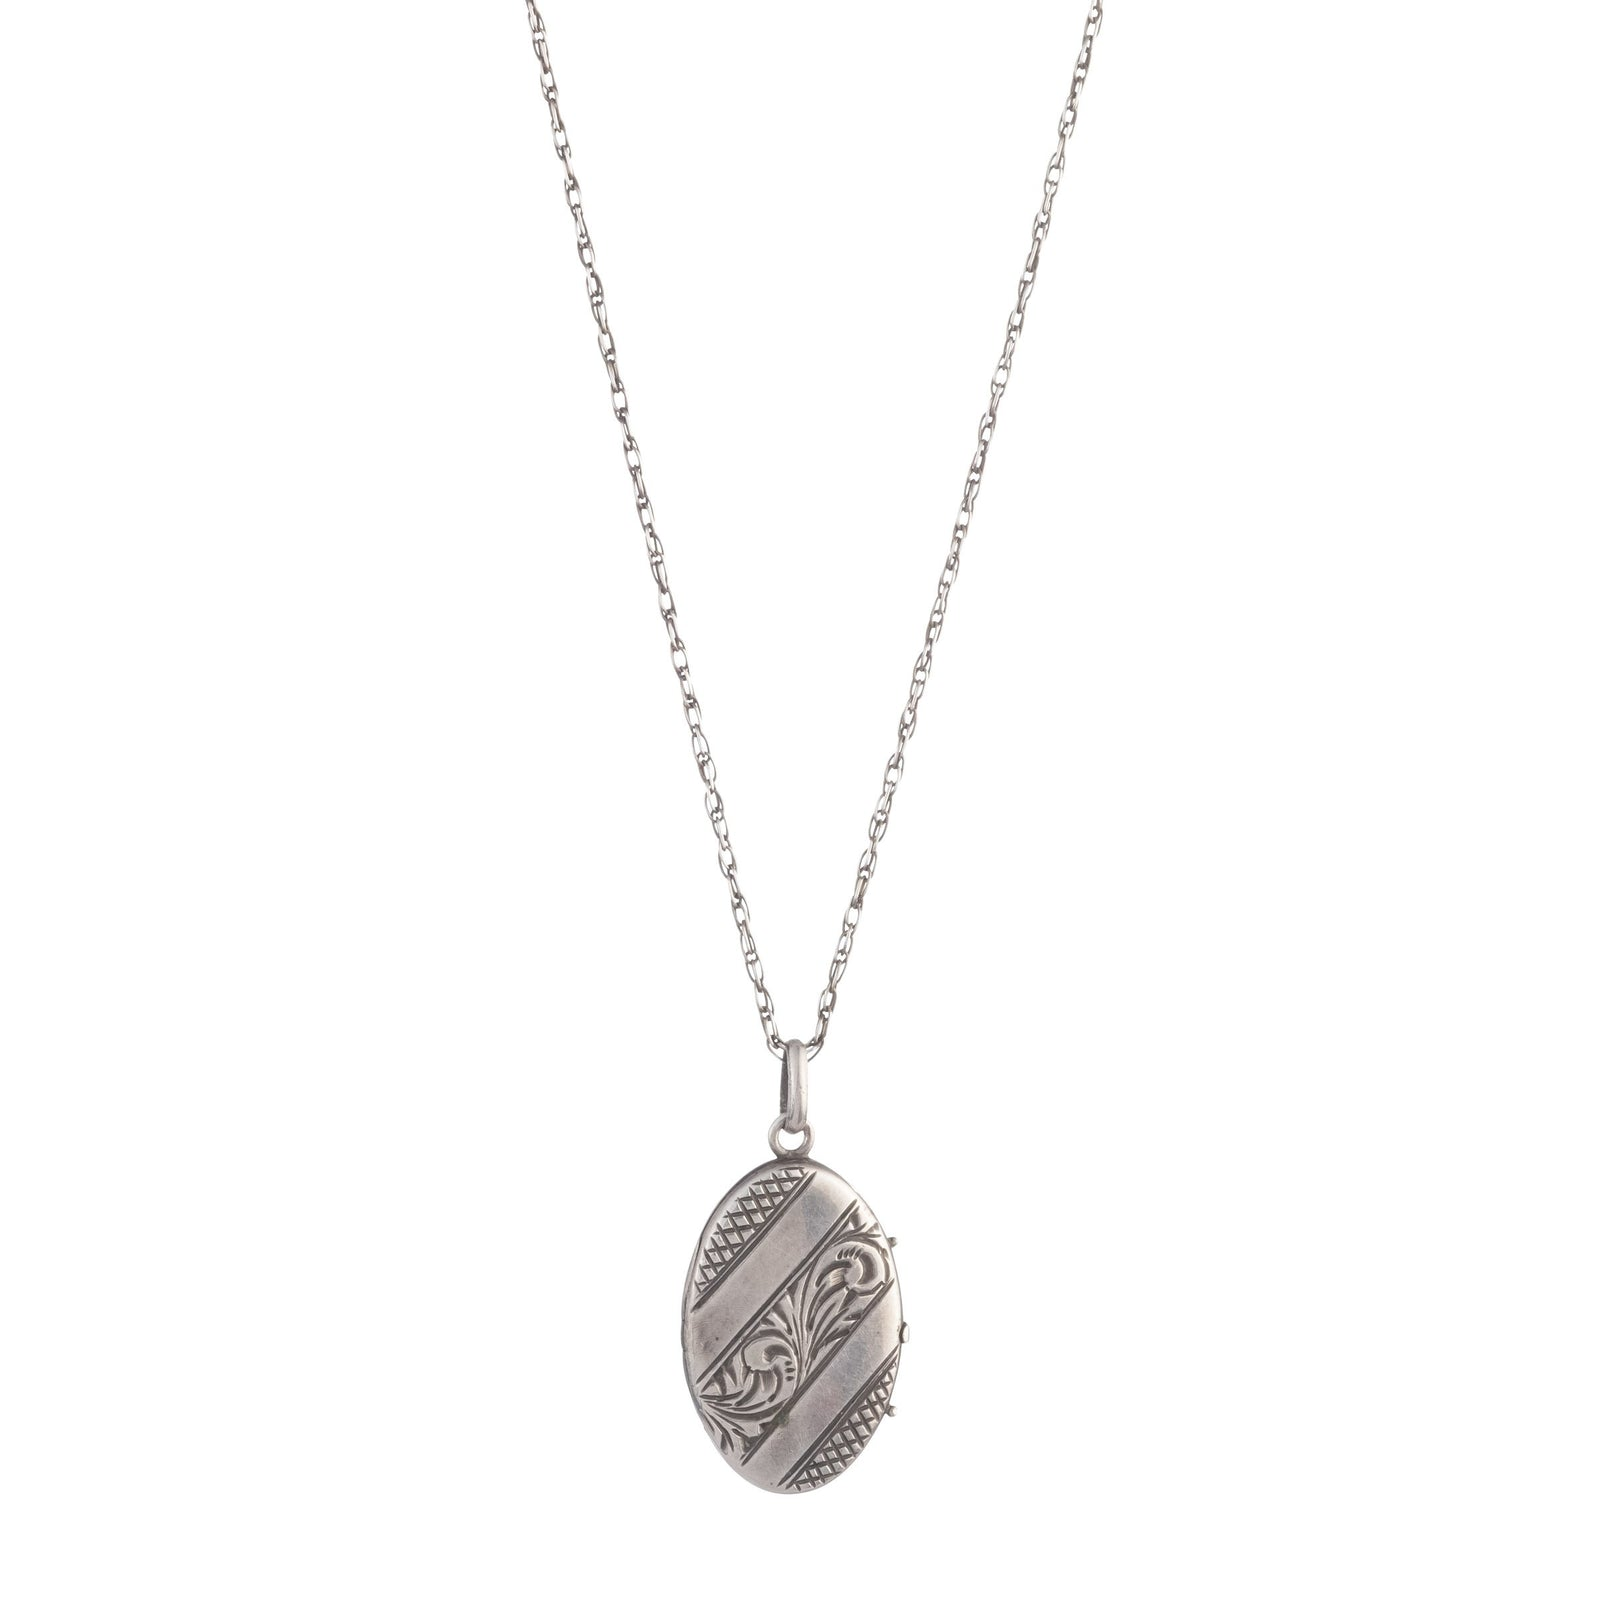 Antique Sterling Silver Oval Striped Locket